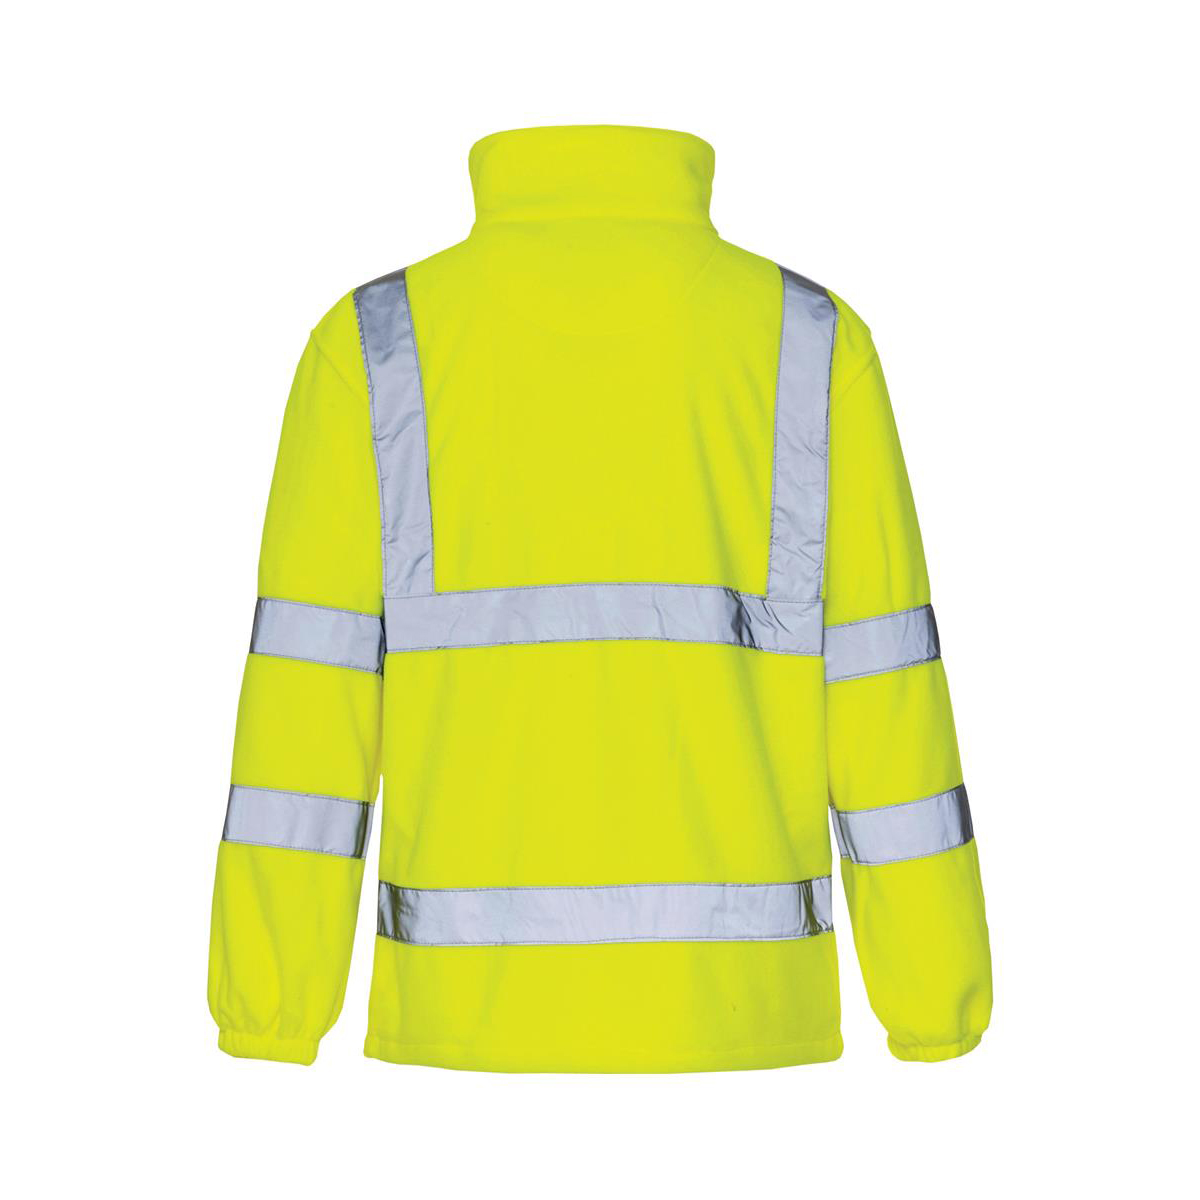 High-Vis Fleece Jacket Poly with Zip Fastening Small Yellow Ref CARFSYS Approx 2/3 Day Leadtime